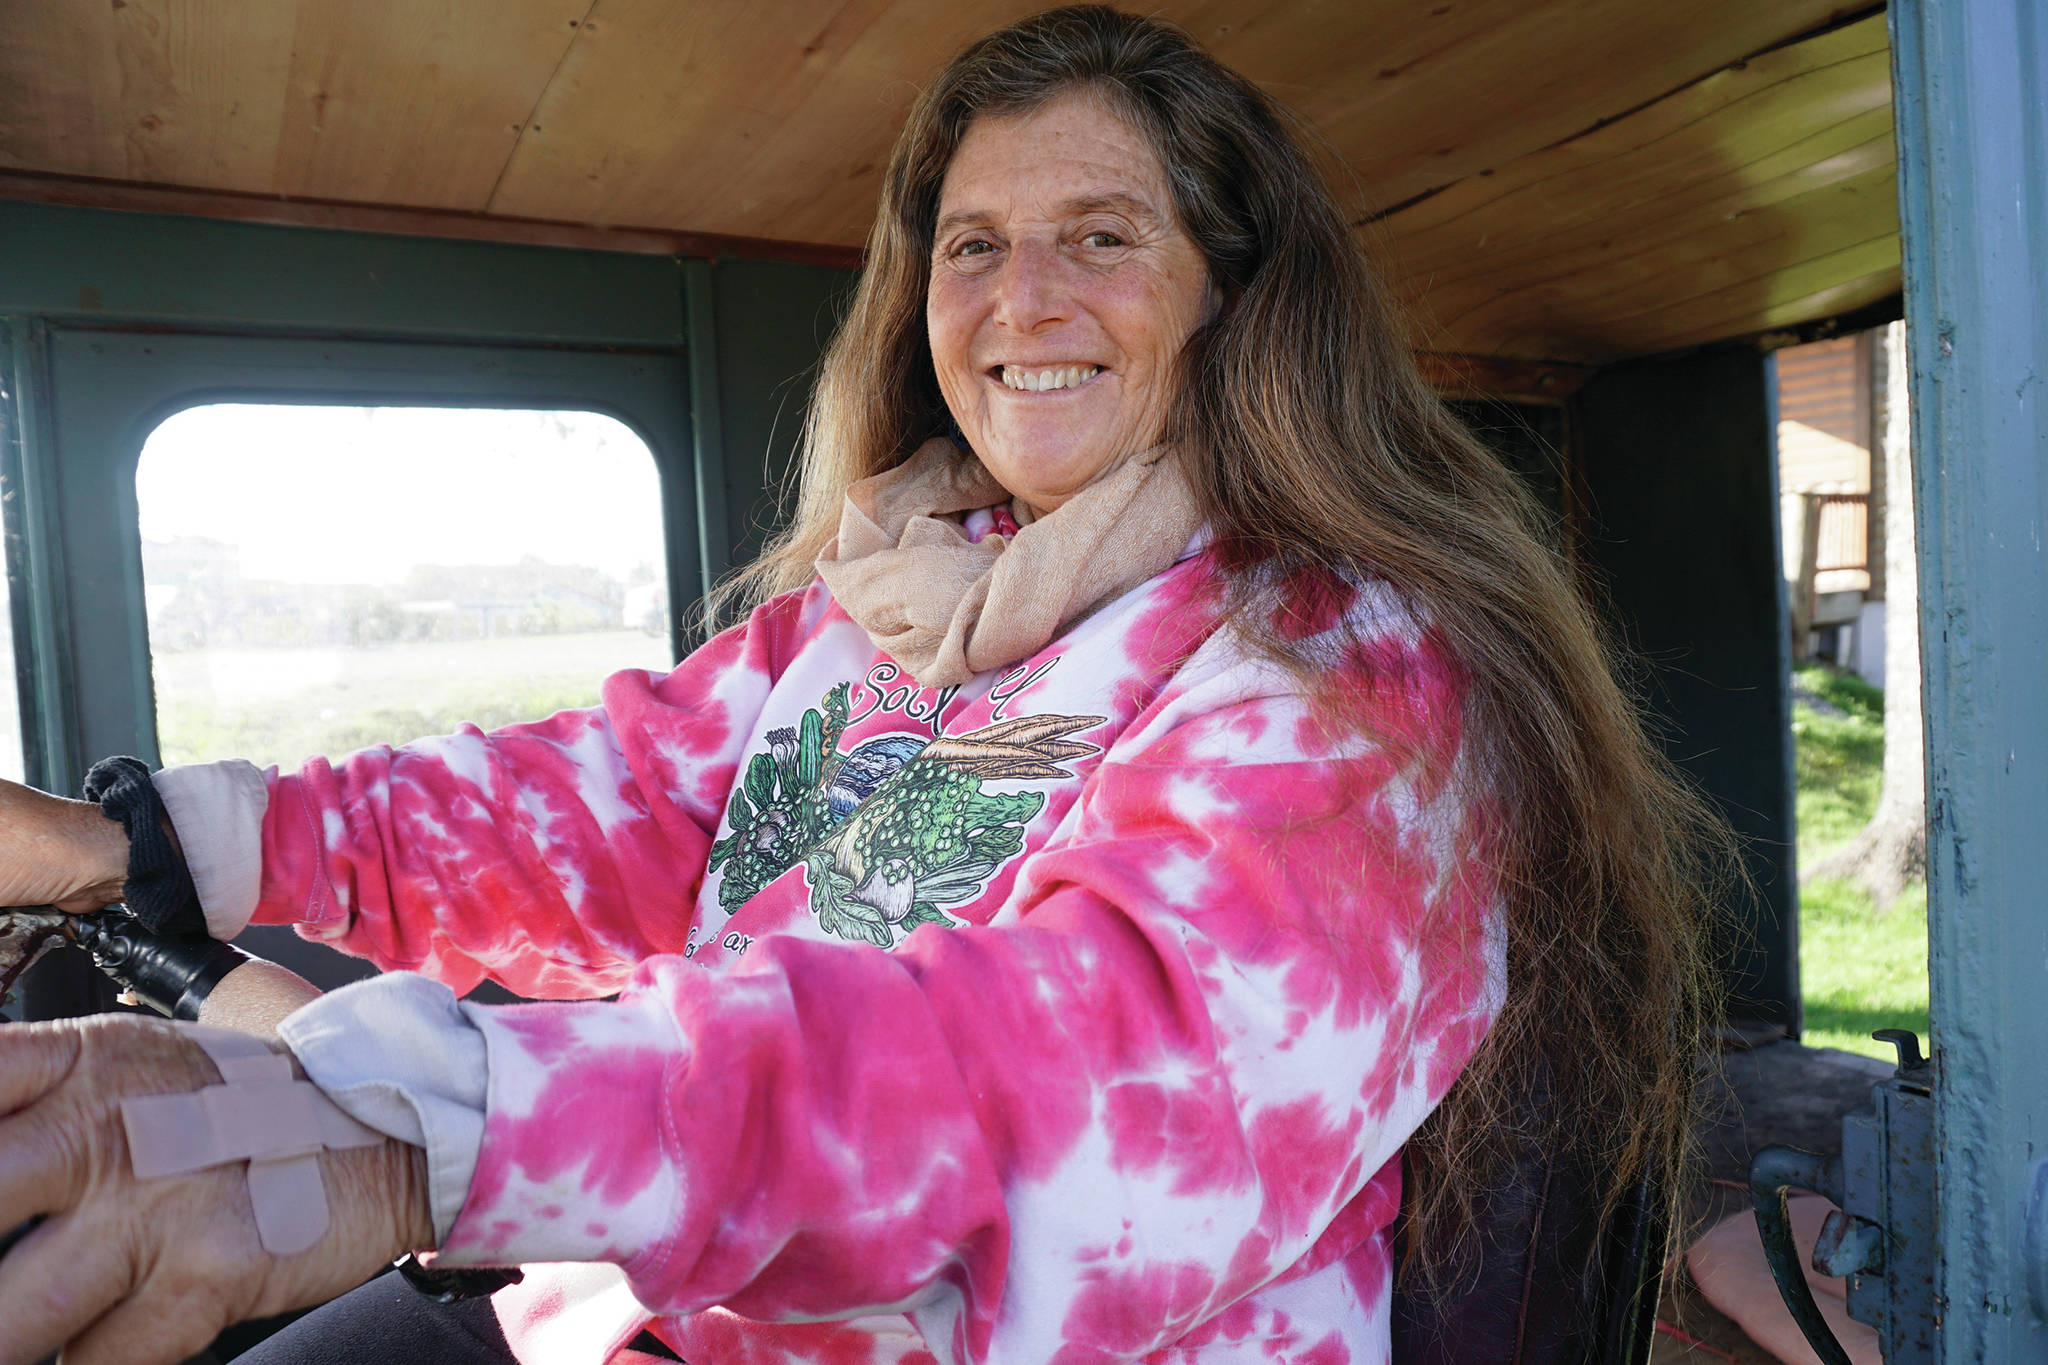 Donna Maltz poses in the original Fresh Sourdough Express Bakery and Cafe van on Sept. 27, 2019, as the landmark business held a going-out-of-business garage sale at its Ocean Drive location in Homer, Alaska. (Photo by Michael Armstrong/Homer News)